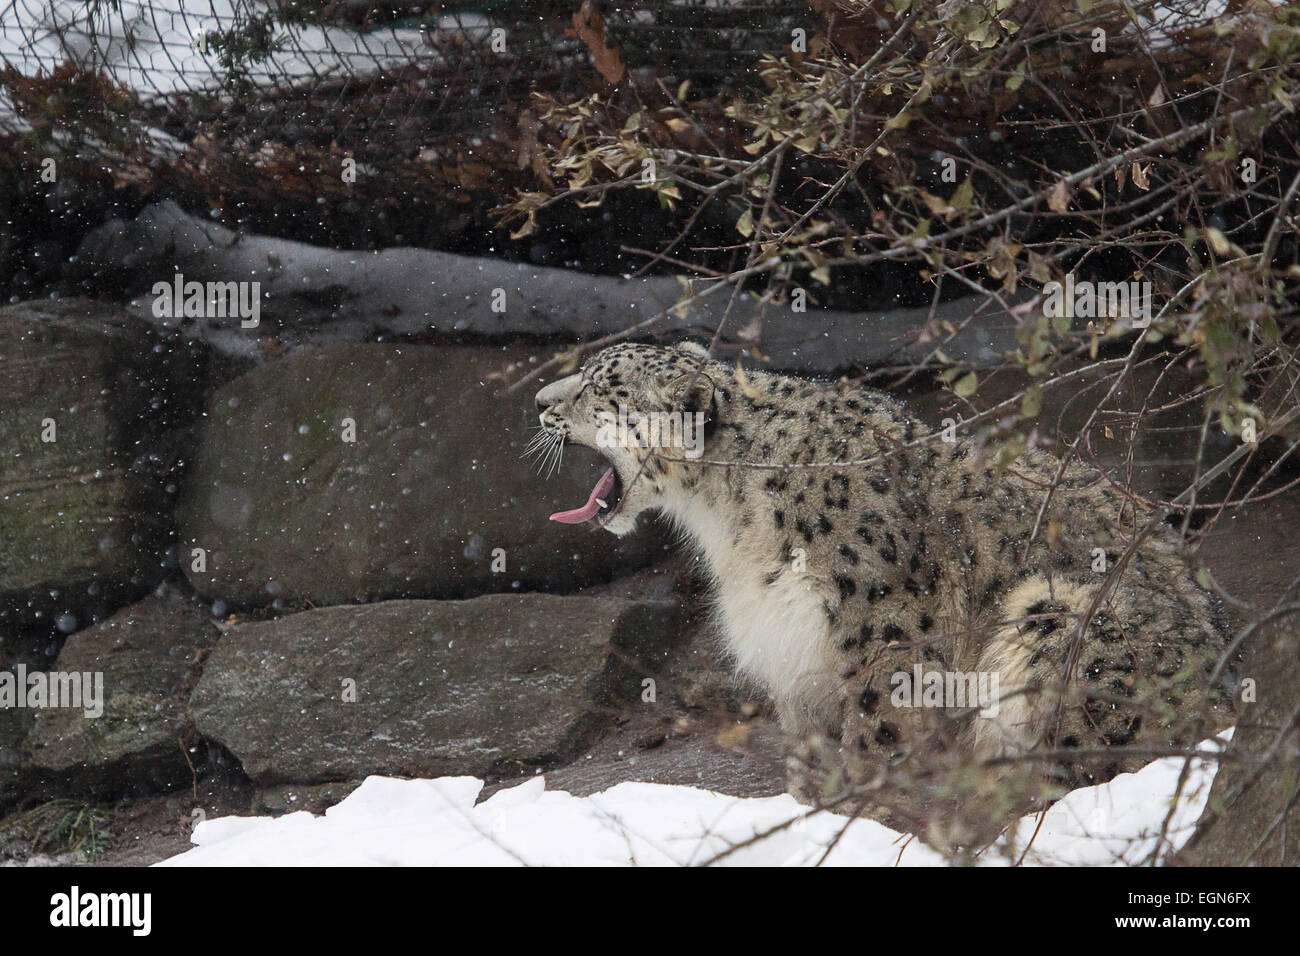 Catching snow- A young snow leopard finds a creative way to quench his thirst - Stock Image